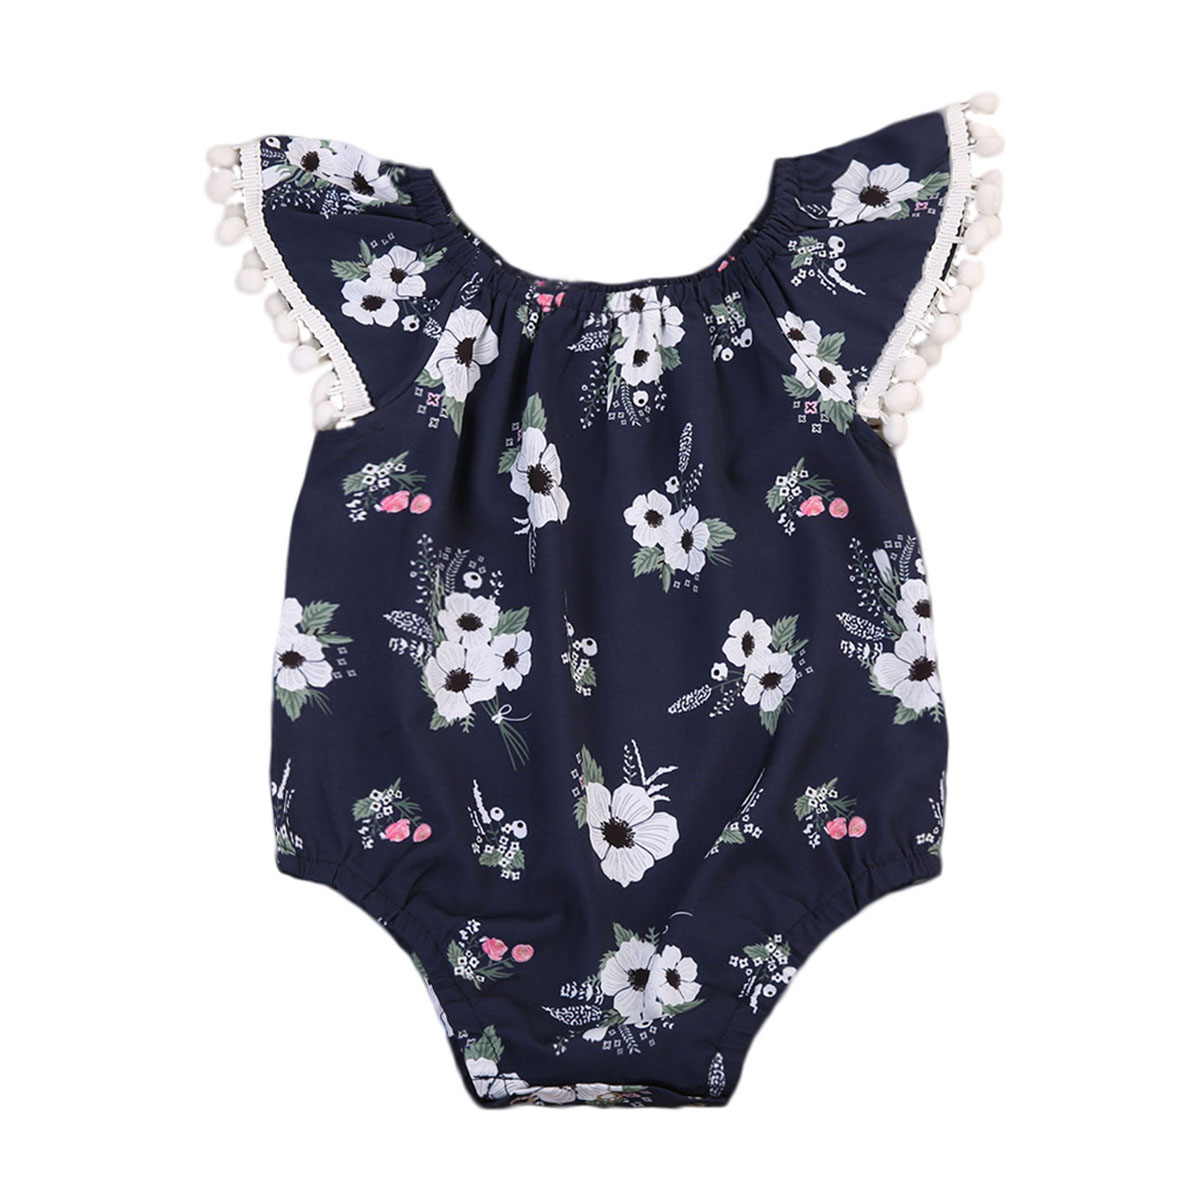 Bodysuits Lovely Newborn Baby Girls Floral Bodysuit Clothes Ruffles Sleeve Tassel Ball Playsuit Toddler Kids Jumpsuit Outfit Beach Sunsuit